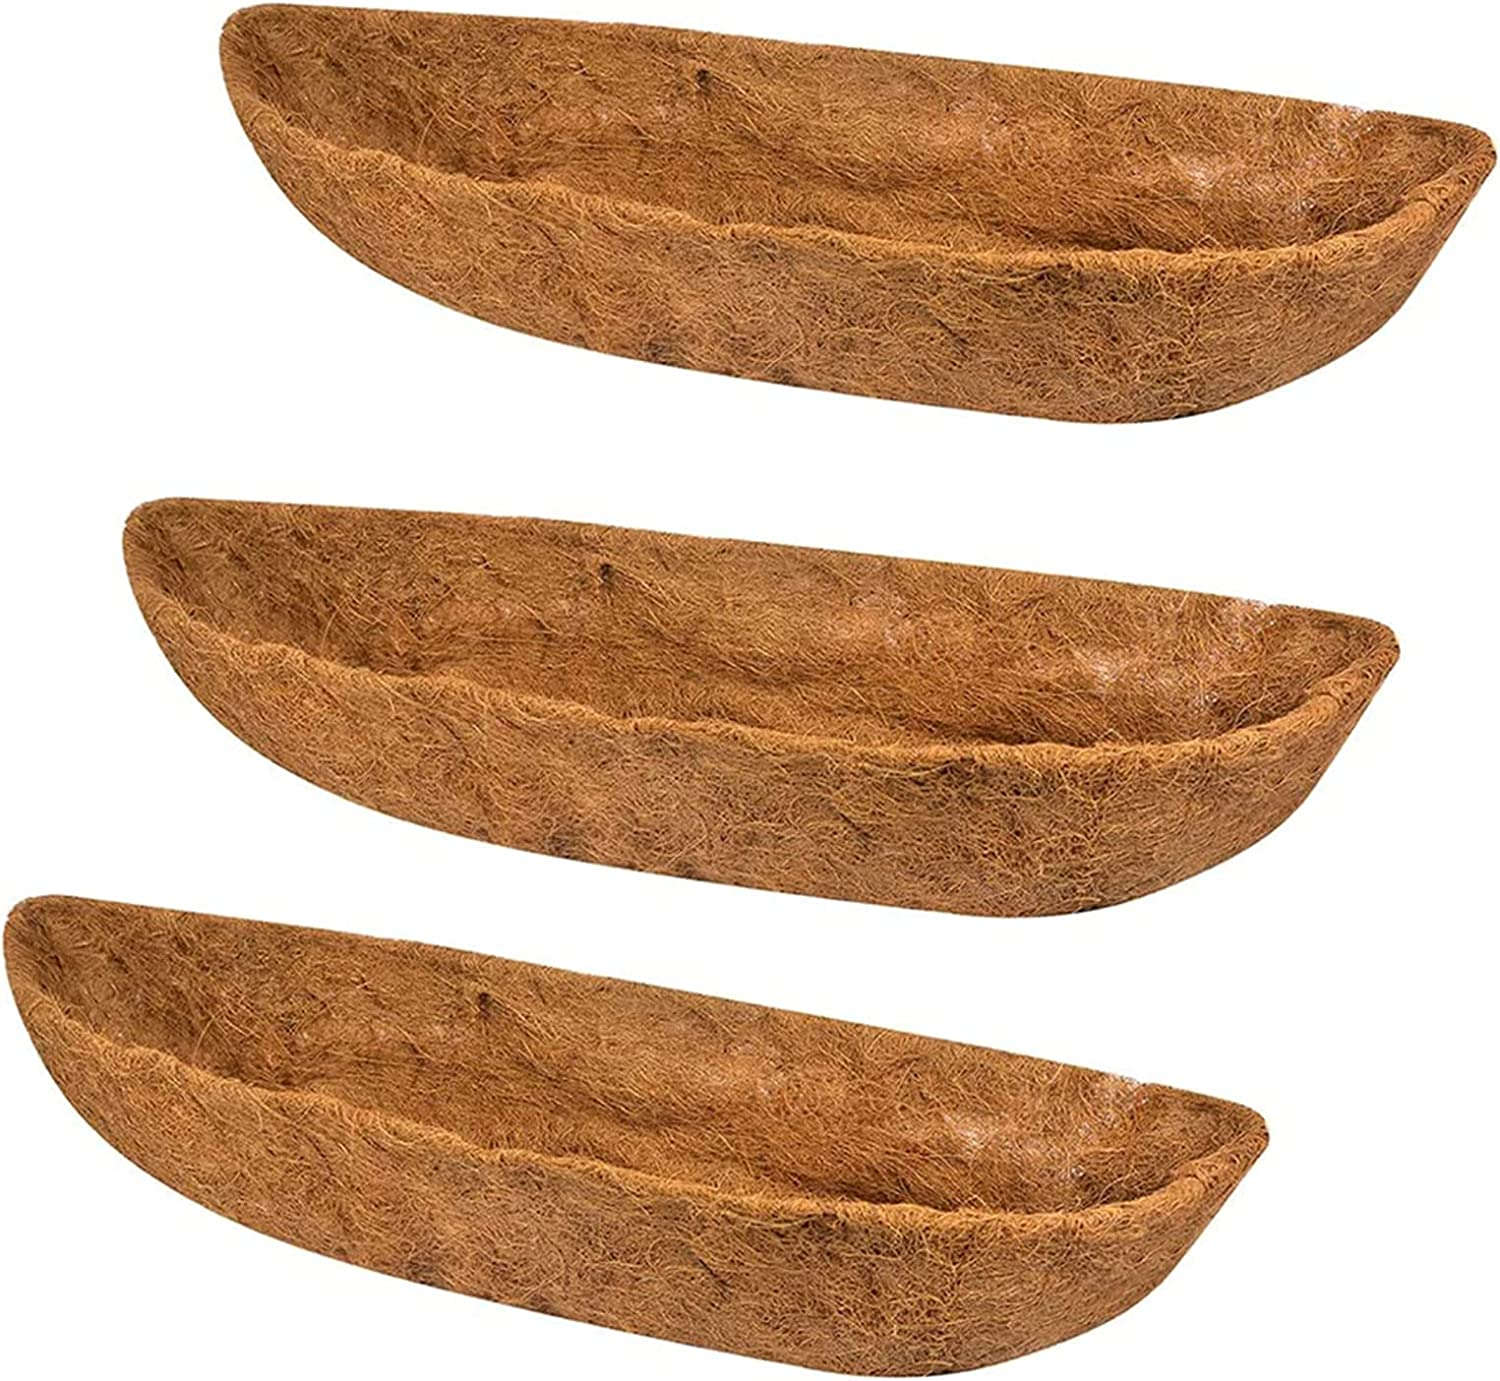 Bombing new work Ayybf 3-Packs Coco Ranking TOP13 Liner R Basket Wall Planter